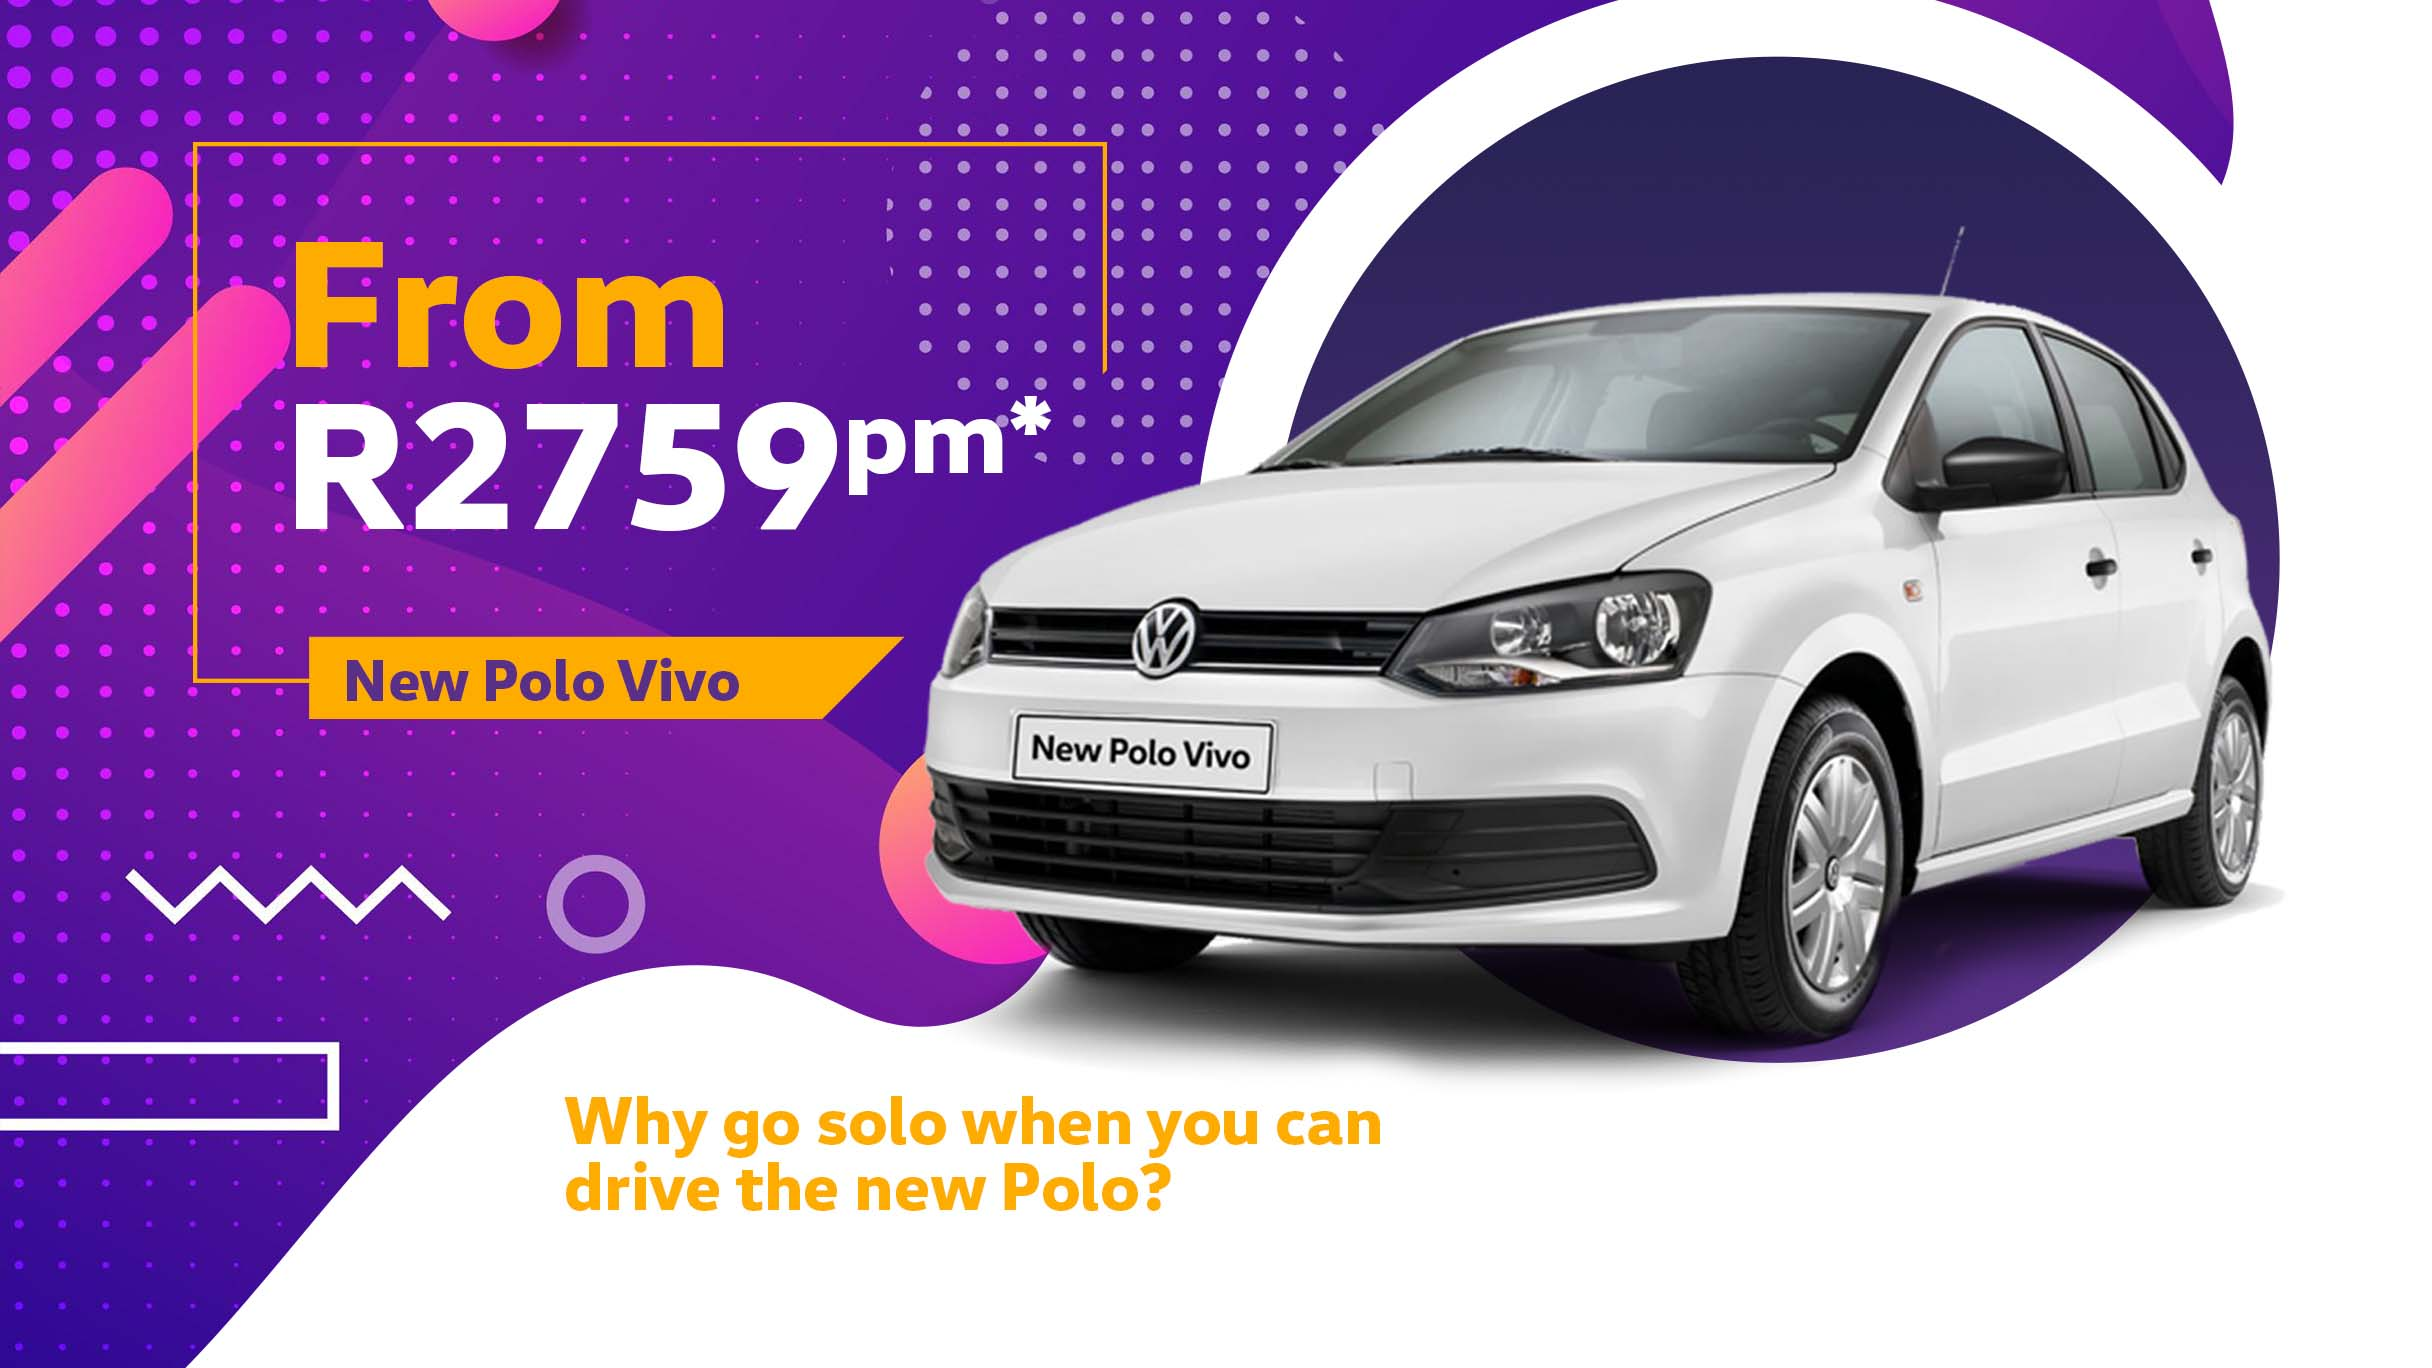 Barons VW New Polo Vivo offer